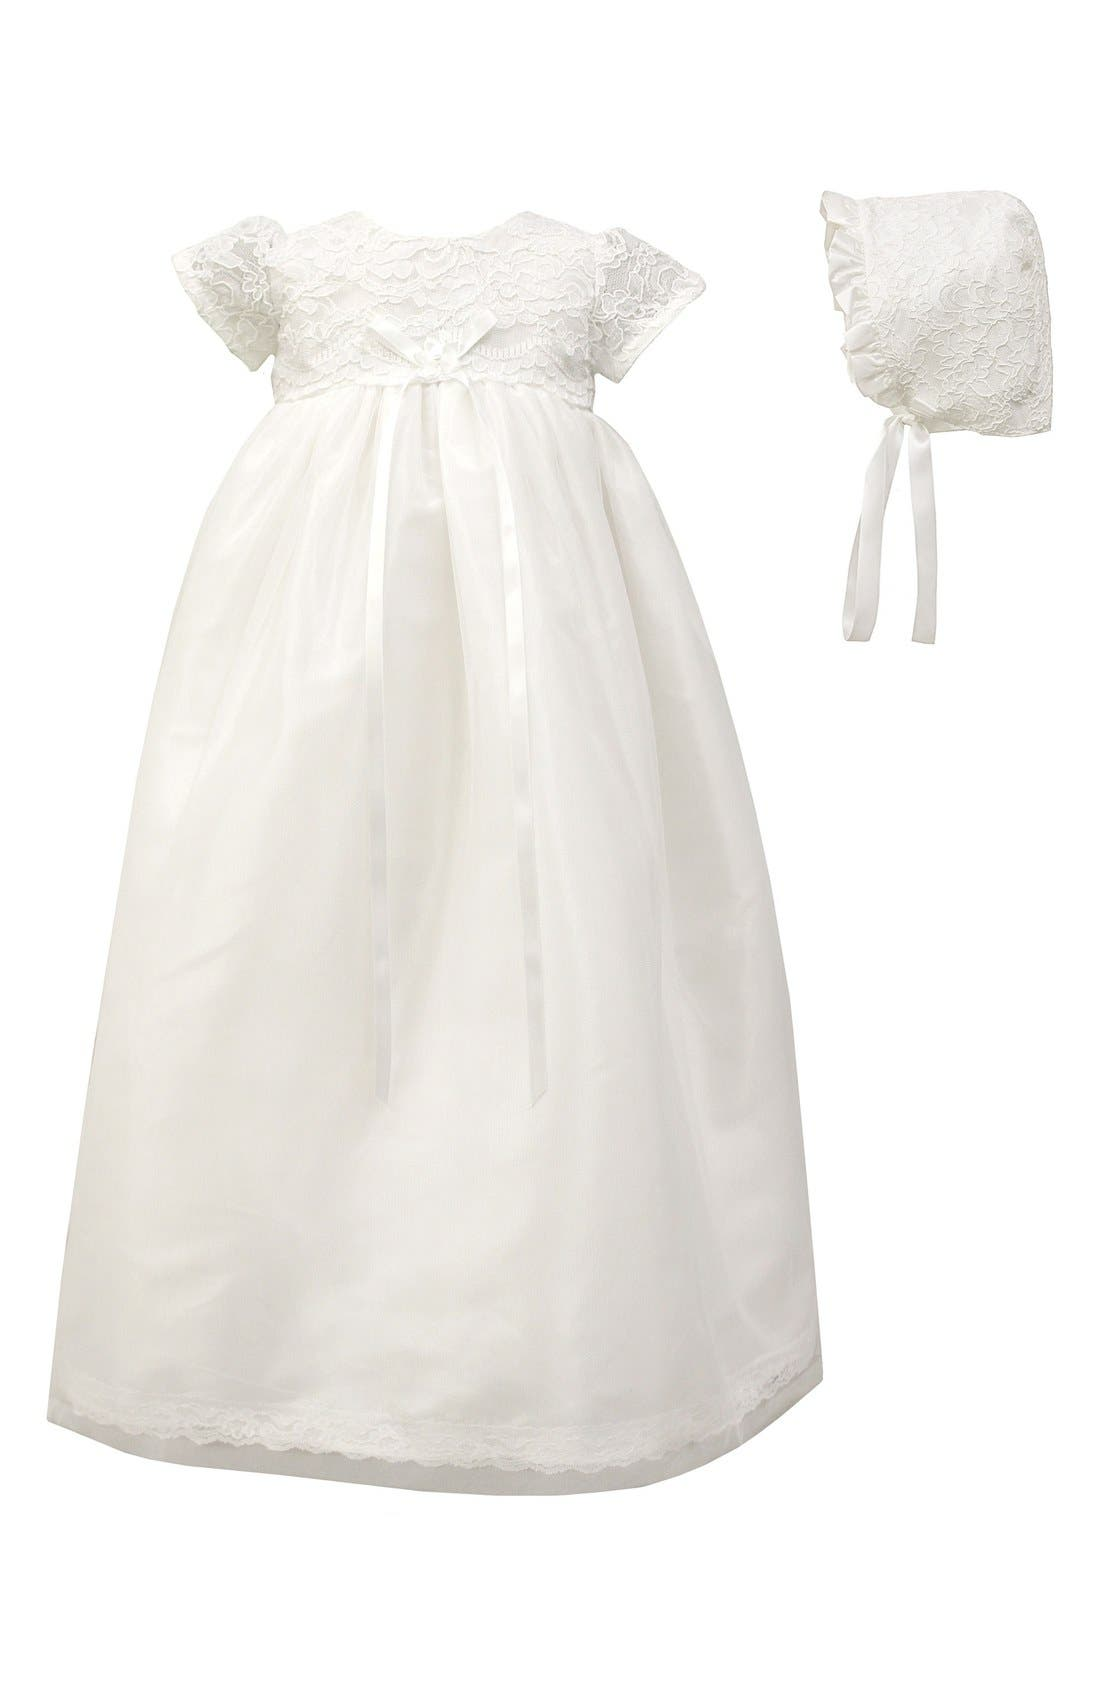 C.I. CASTRO & CO., Scalloped Lace Christening Gown & Bonnet Set, Main thumbnail 1, color, WHITE